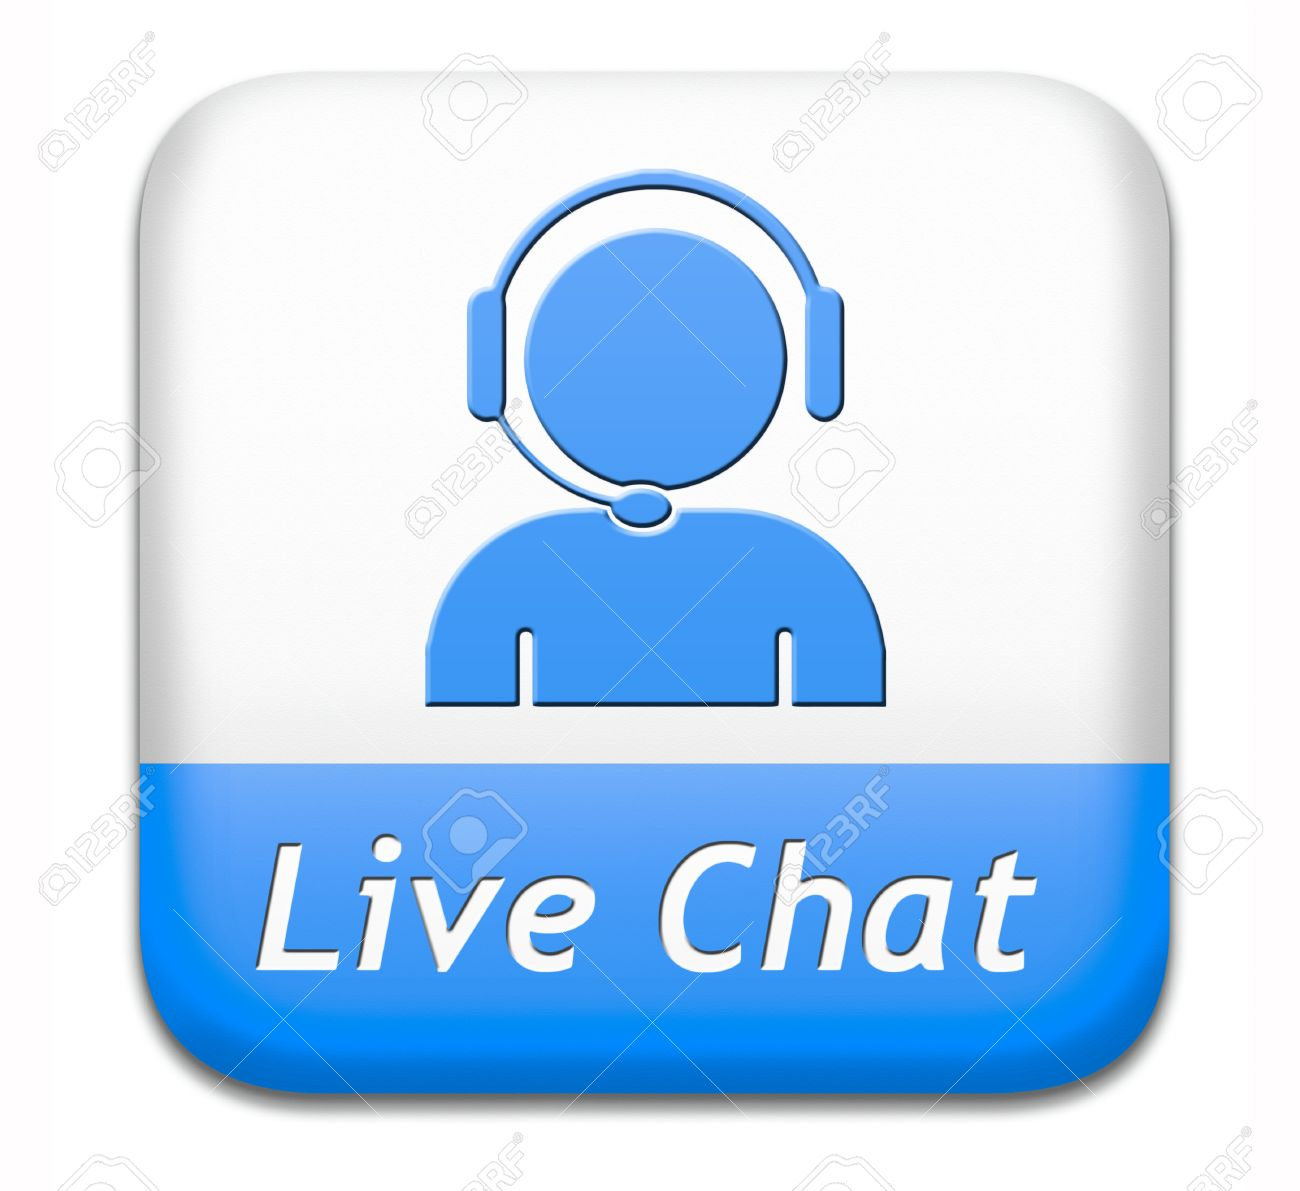 live chat icon. Chatting online button. Stock Photo - 26249408 0adc783d7